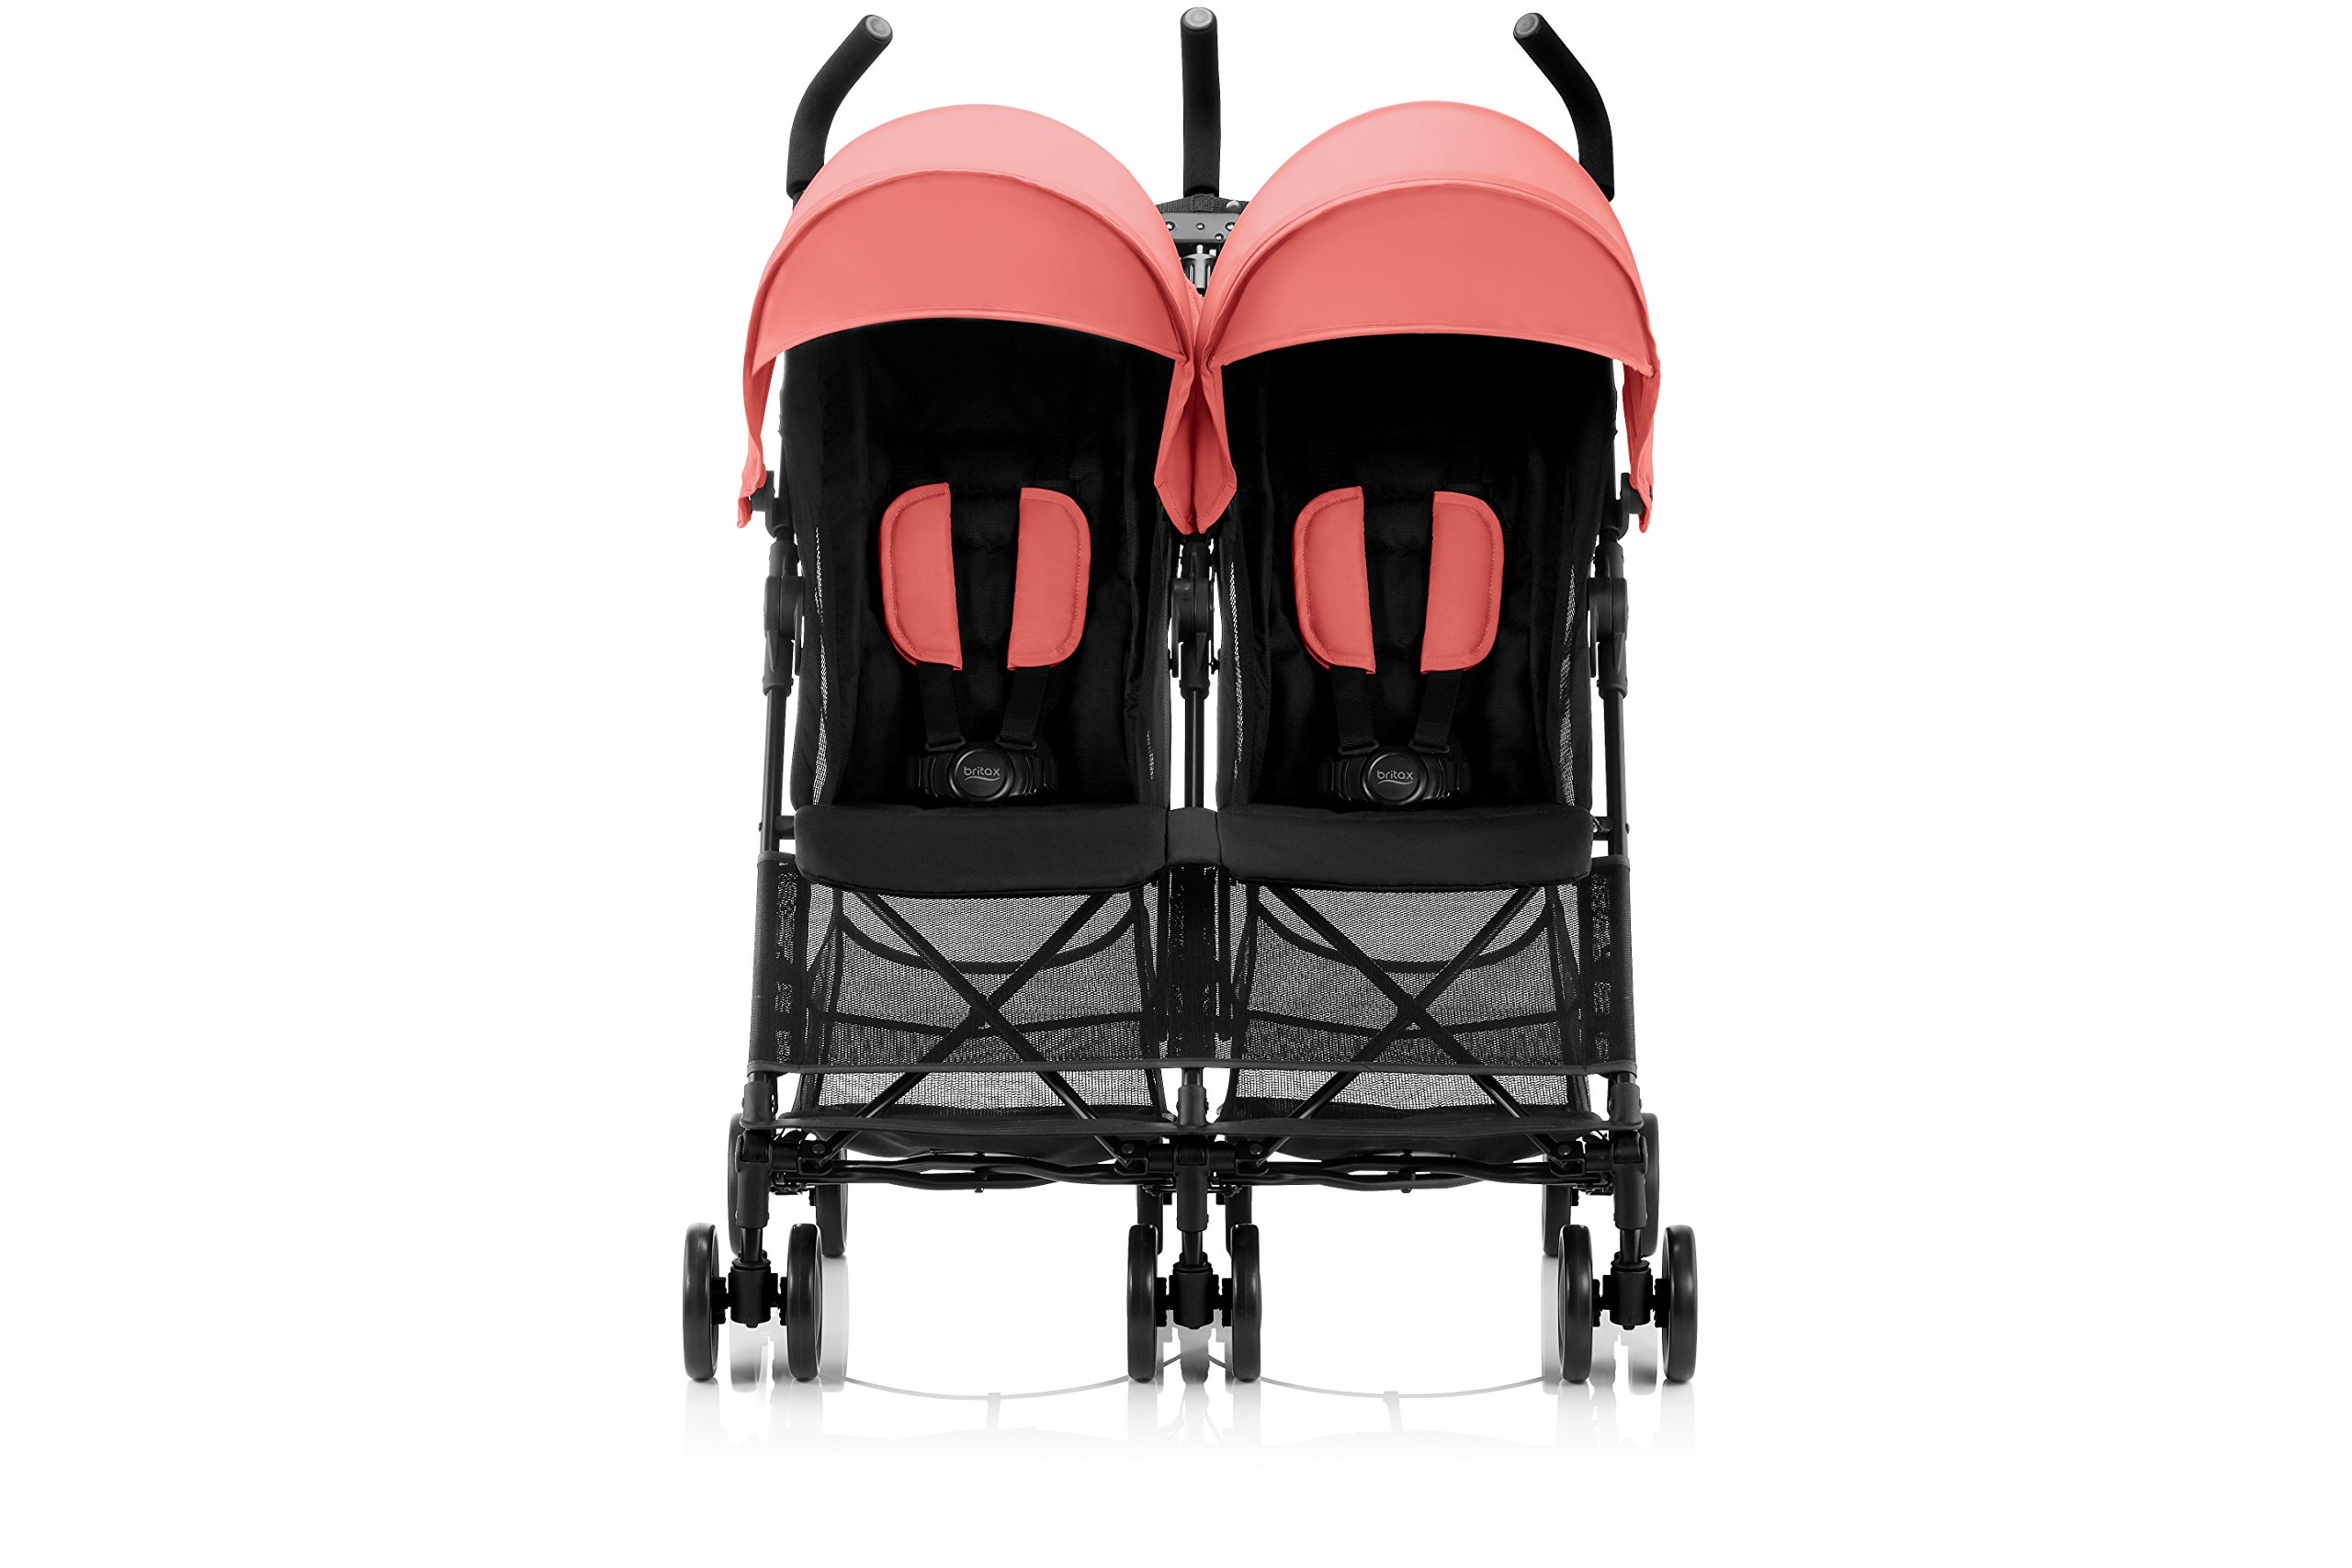 Britax Römer HOLIDAY DOUBLE buggy, 6 months to 3 years (up to 15 kg per seat),Coral Peach Britax Römer Reclining backrest - you can make your child's journey even more convenient with the reclining backrest. the backrest can be reclined independently which gives you the flexibility to provide a relaxing sleeping position for each child individually. Seat unit with mesh panels - to keep your child comfortable on hot days, the seat unit has mesh panels on the sides and top of the seat unit for better air circulation. Large hood with sun visor - when taking a nice relaxing stroll in the sun, the large hoods with sun visor are independently adjustable and provide protective shade to your little passenger. 2